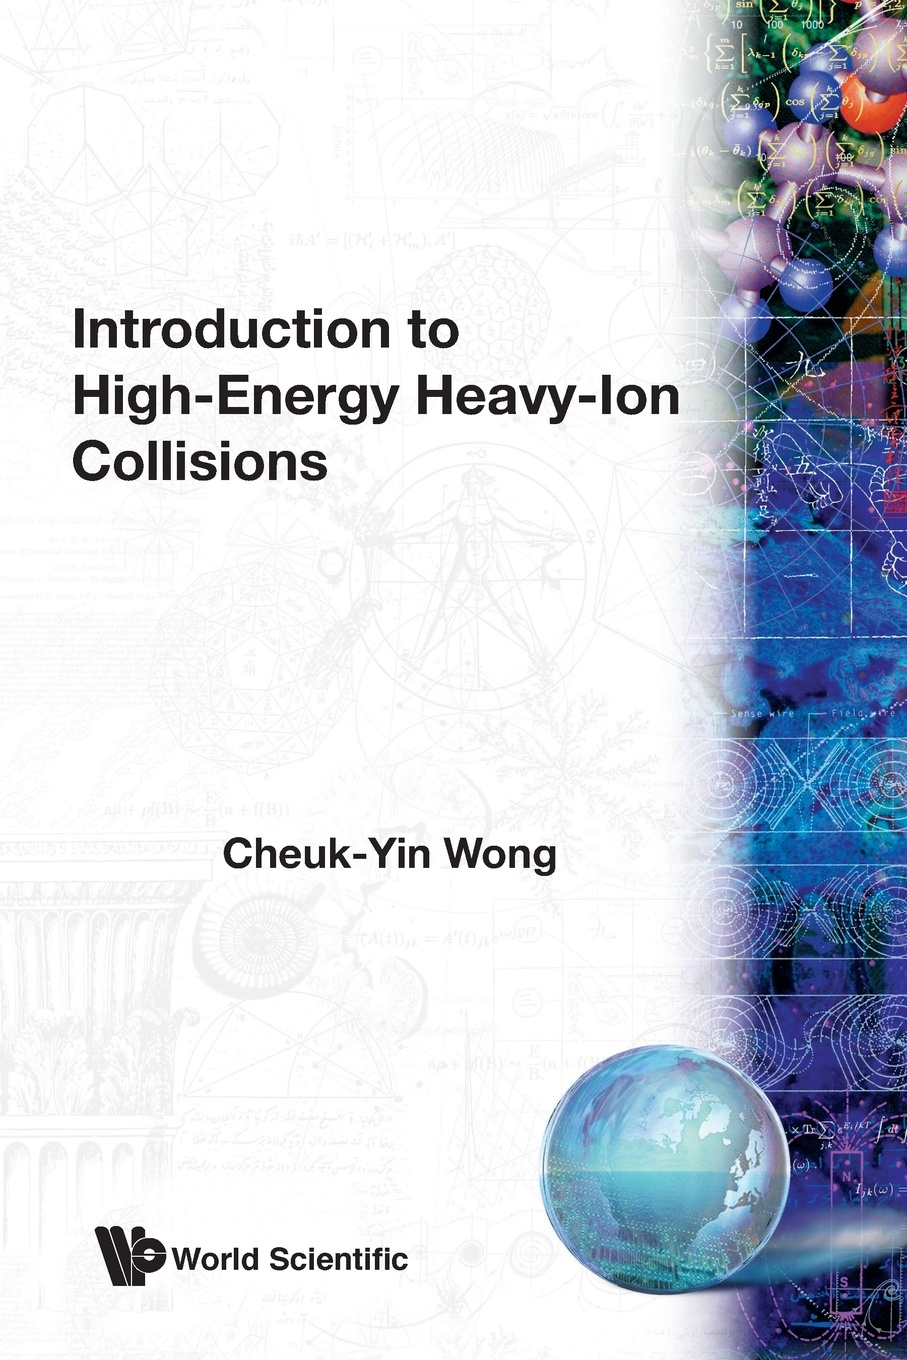 цена на Cheuk-Yin Wong Introduction to High-Energy Heavy-Ion Collisions